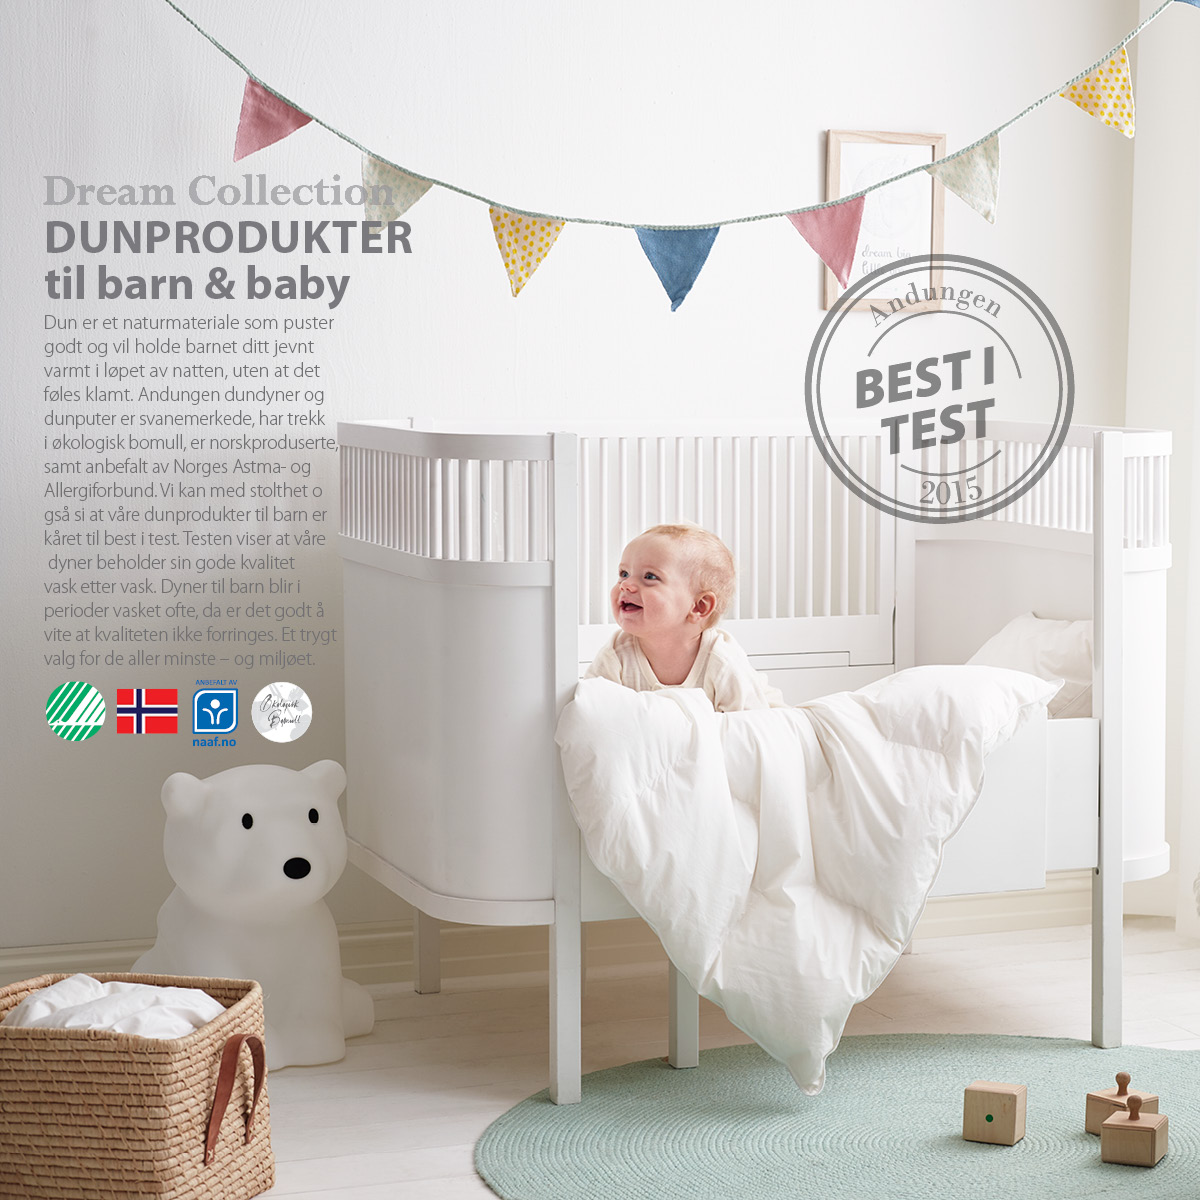 Andungen dun - best i test!